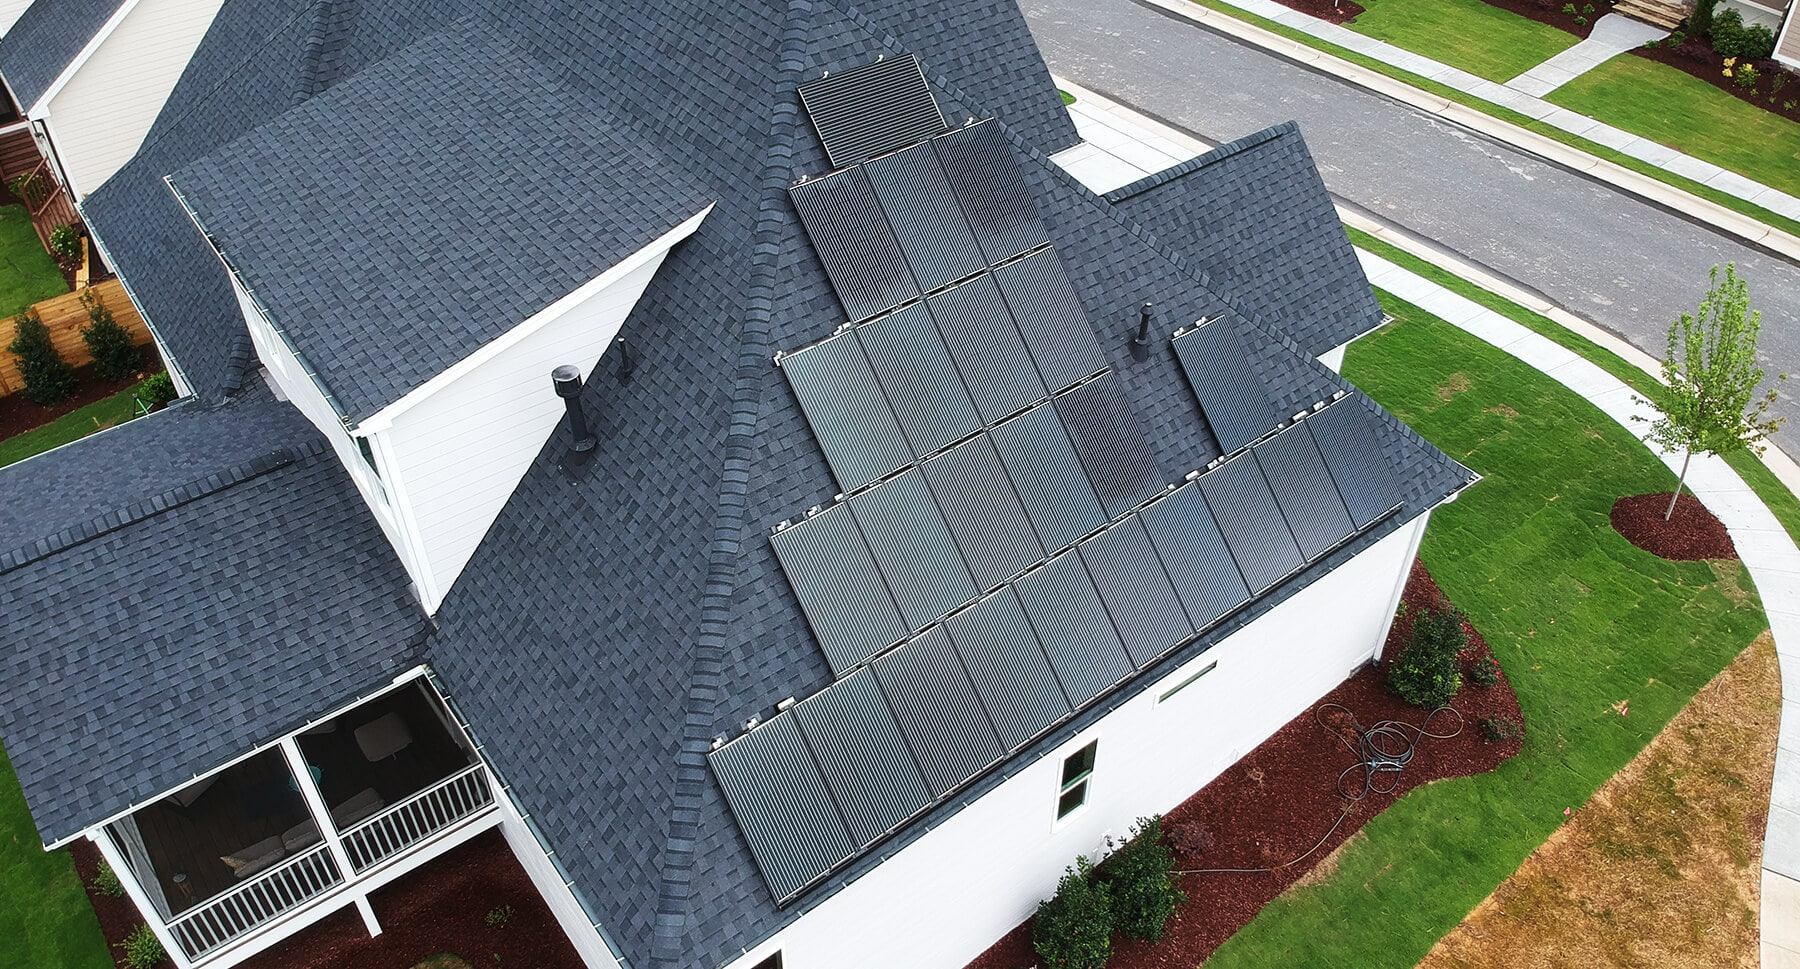 Aerial view of a home with black solar panels on the roof